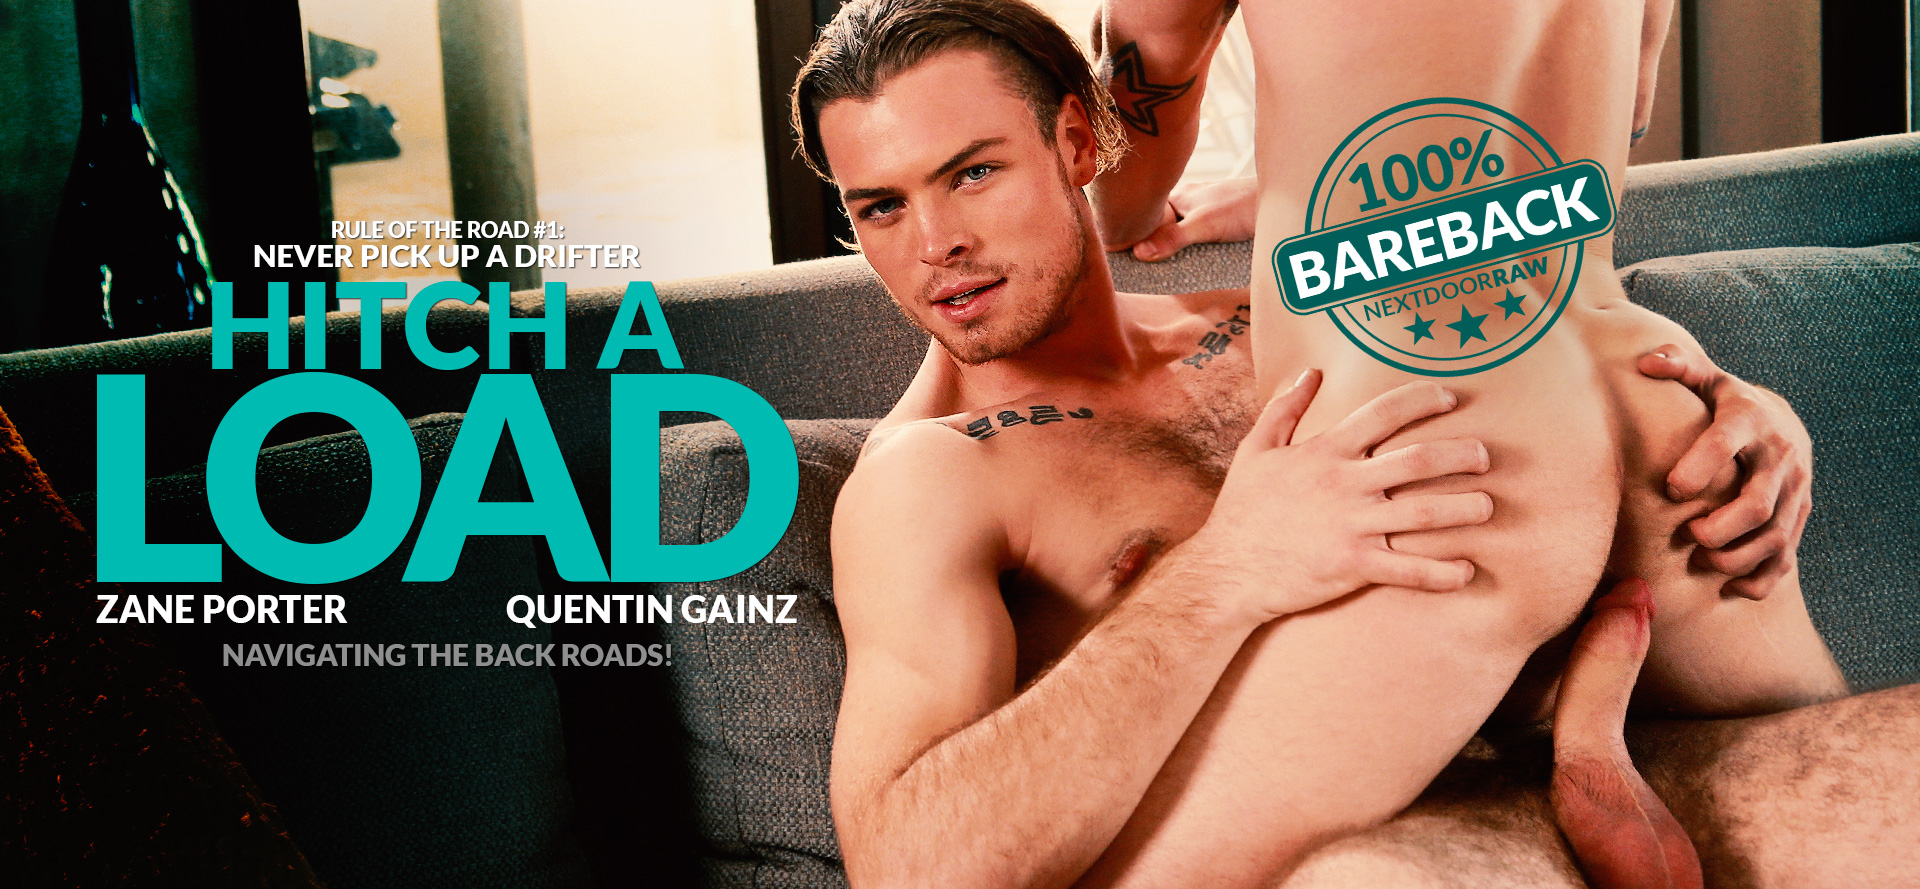 Zane Porter and Quentin Gainz in Hitch a Load